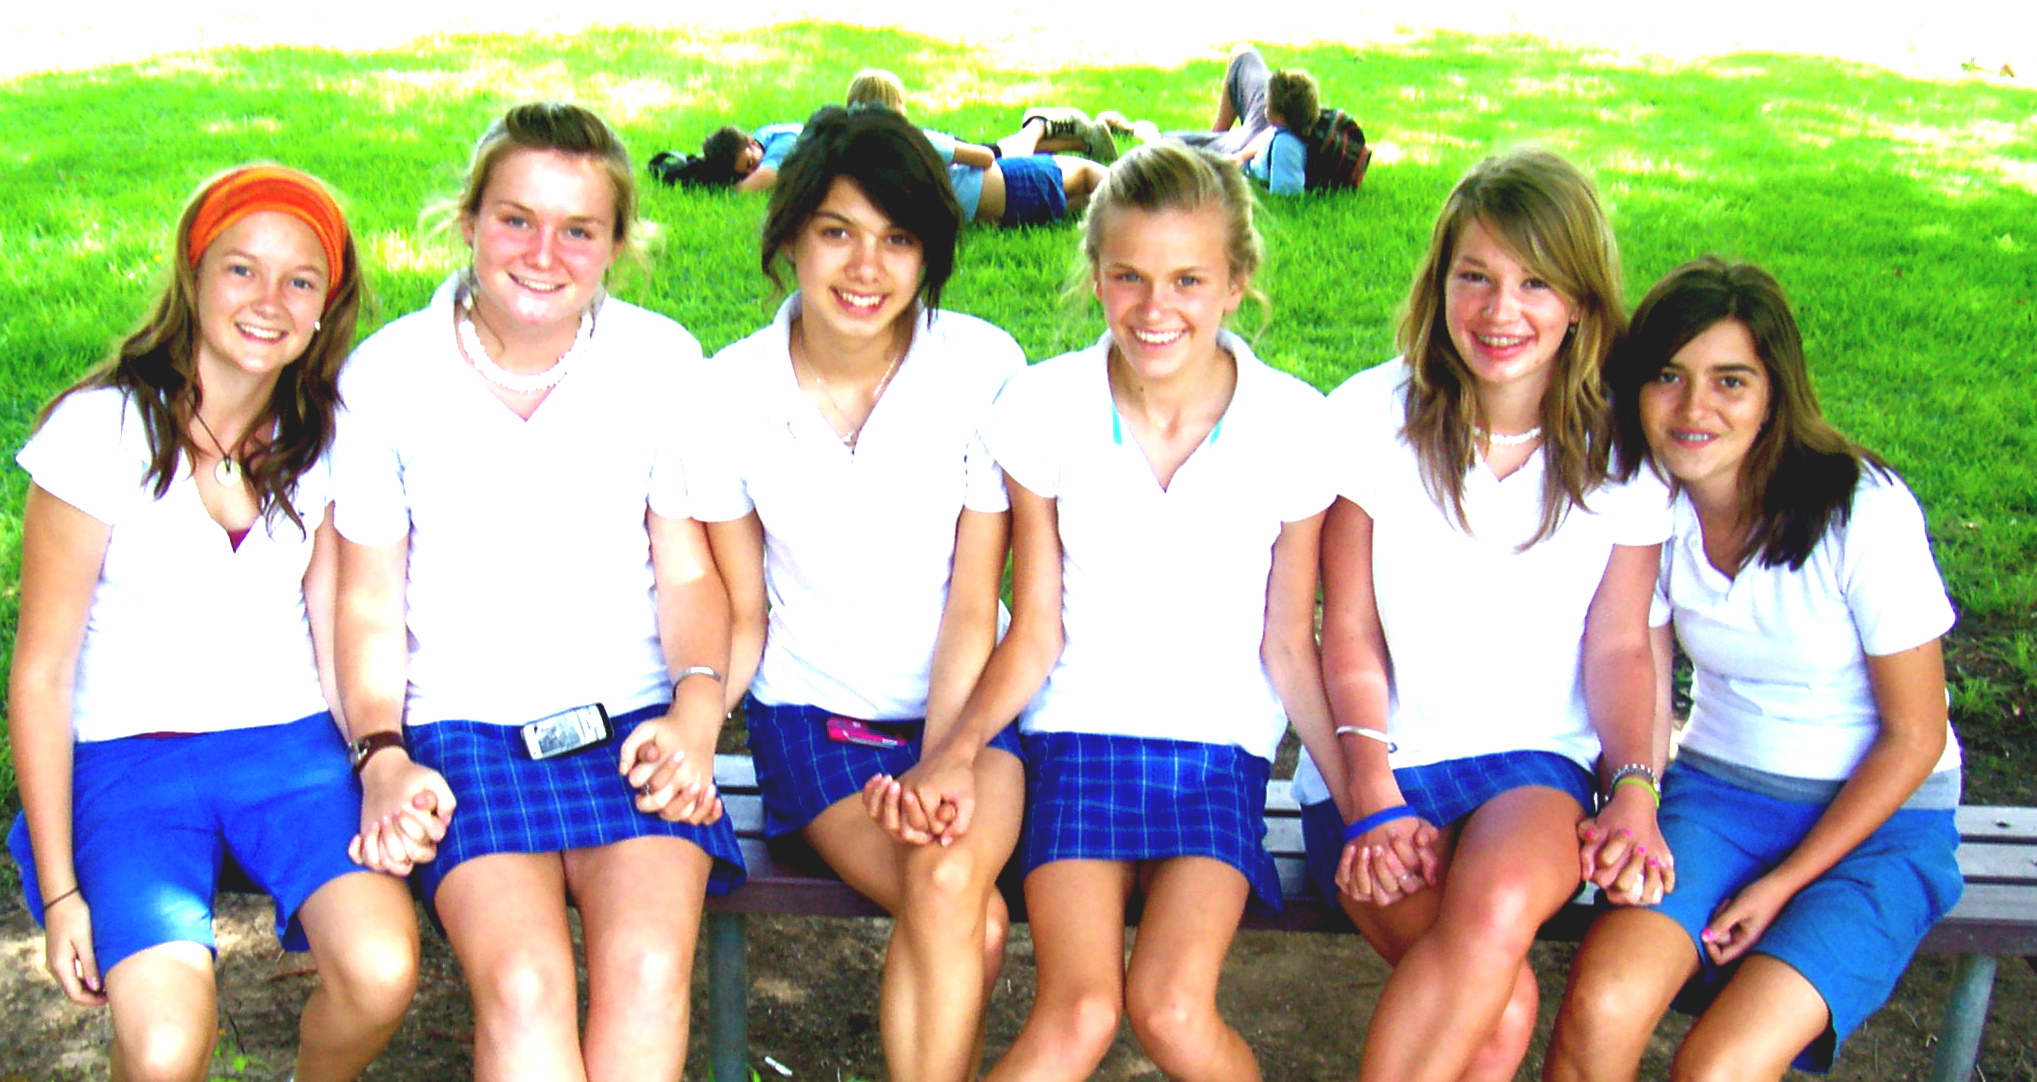 Real private school girls was specially